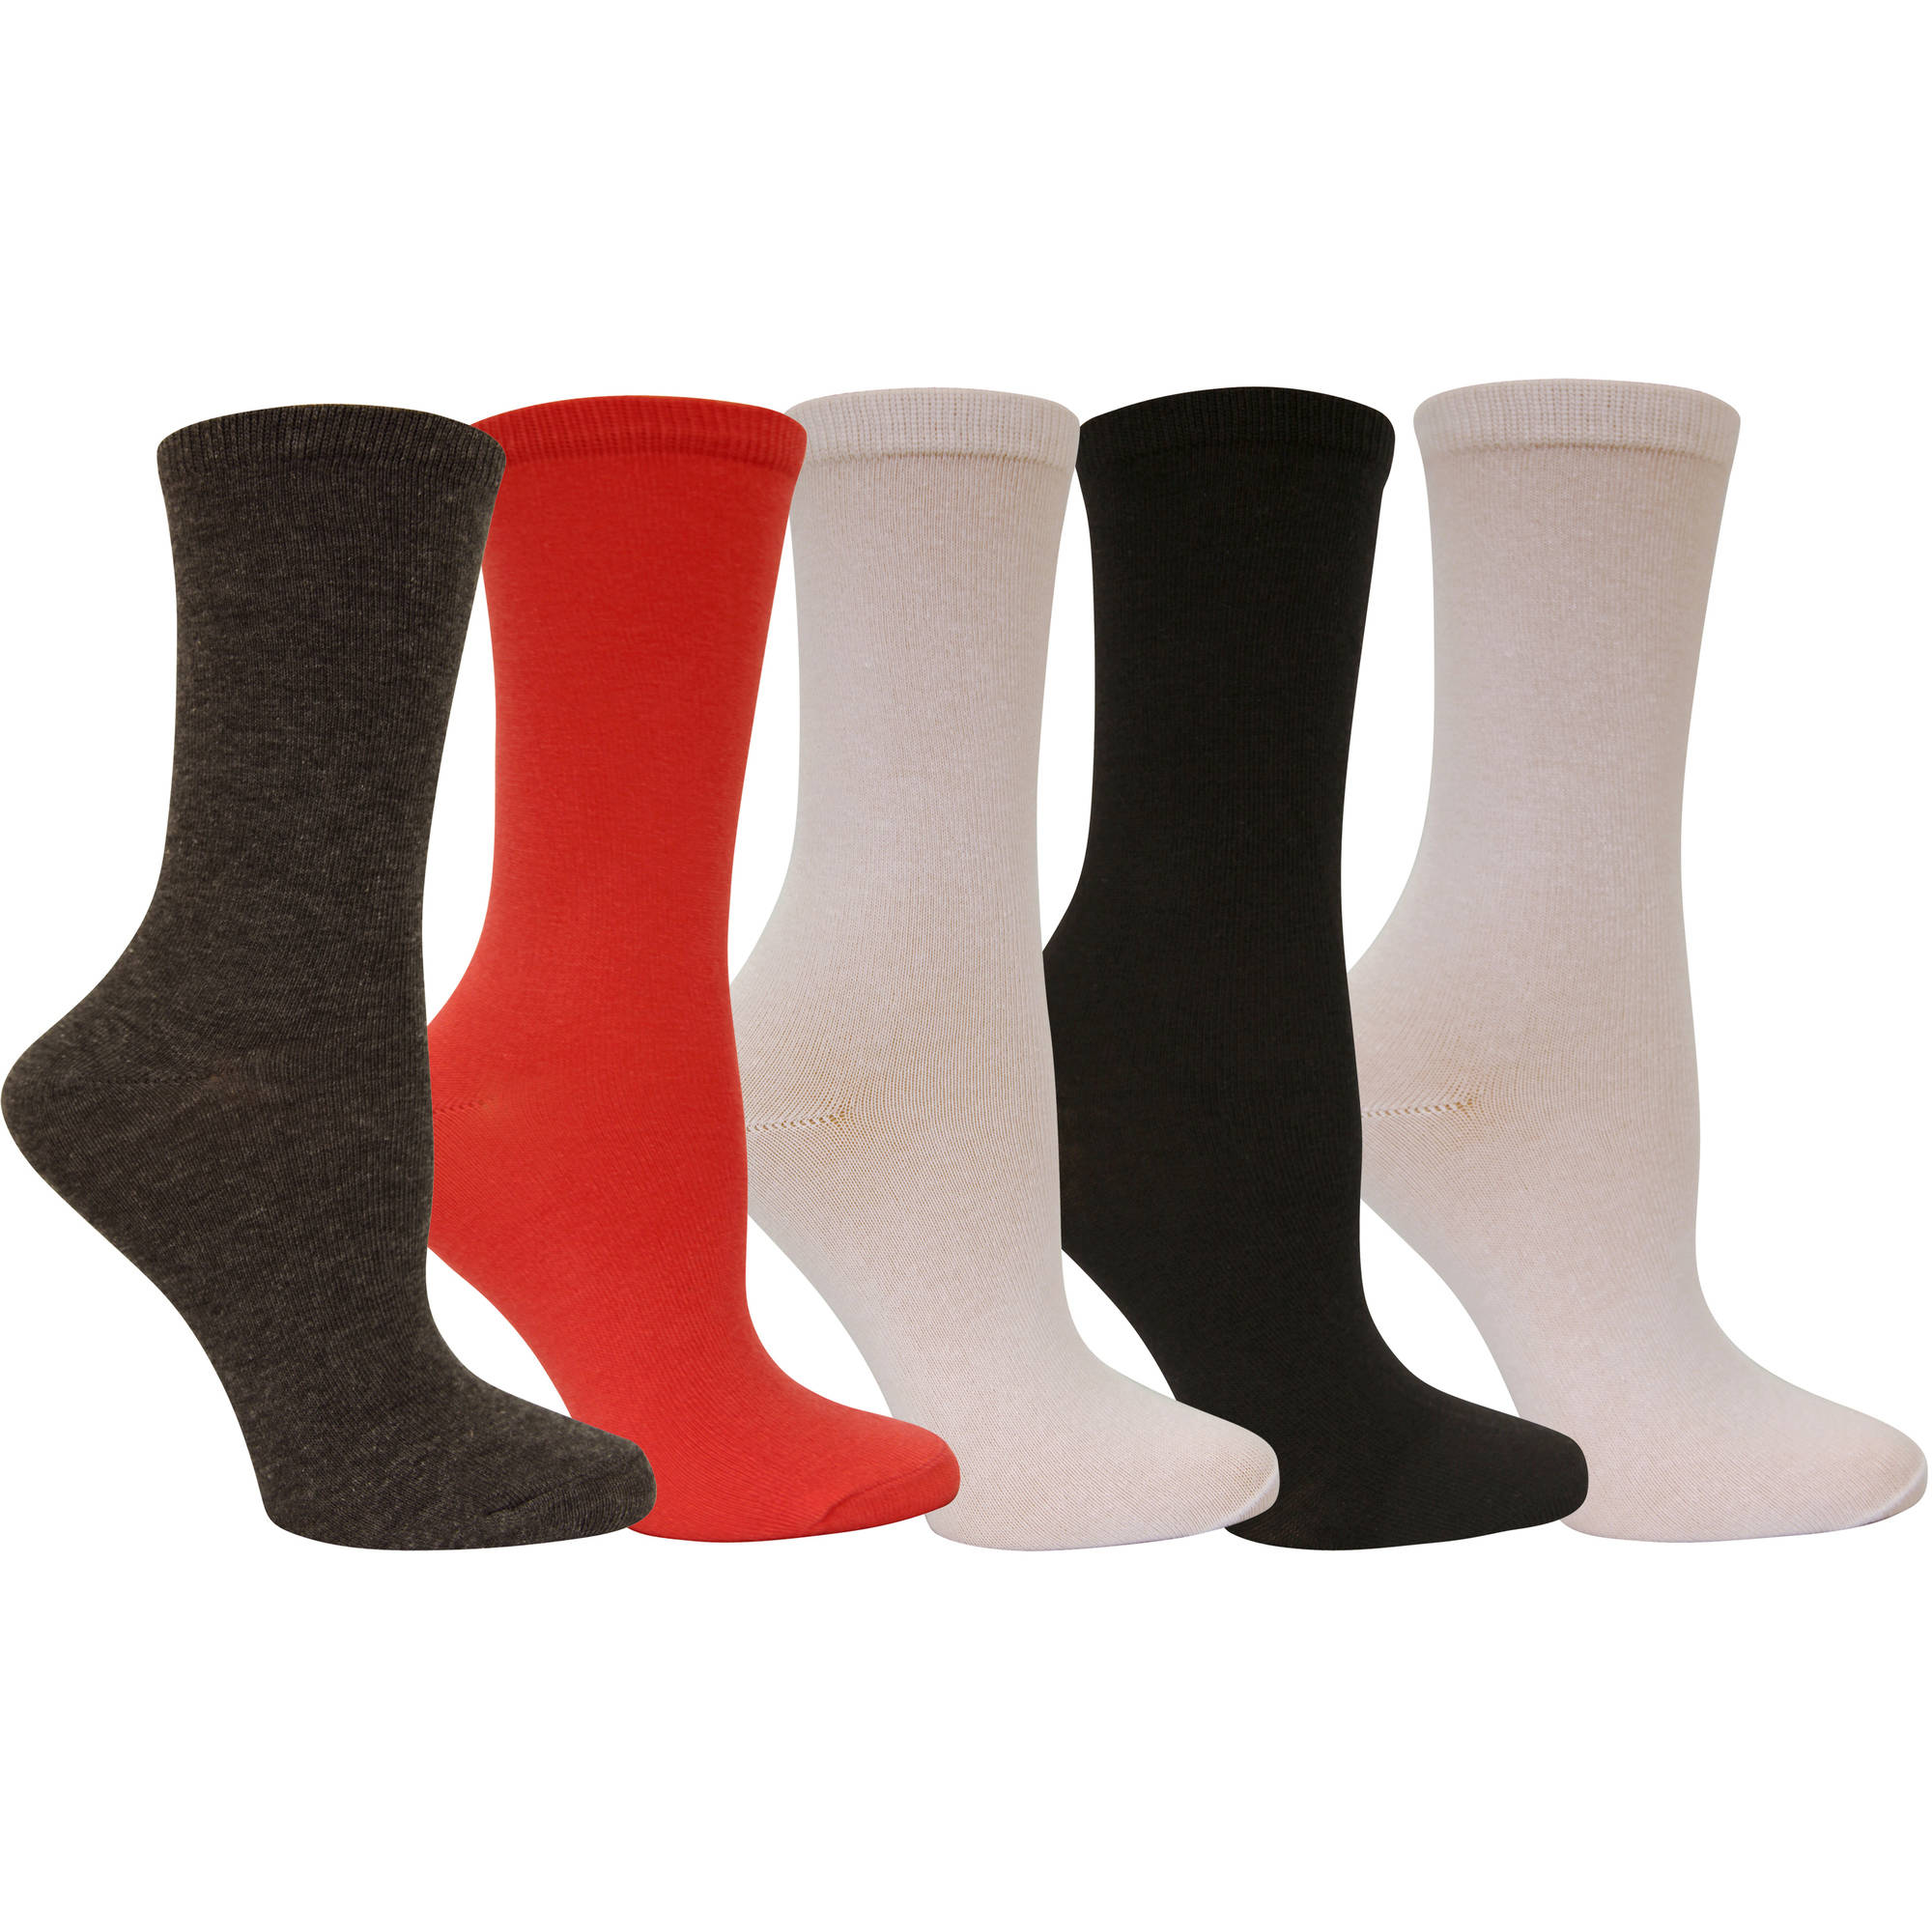 Faded Glory Womens Light Weight Crew Socks - 5 Pack